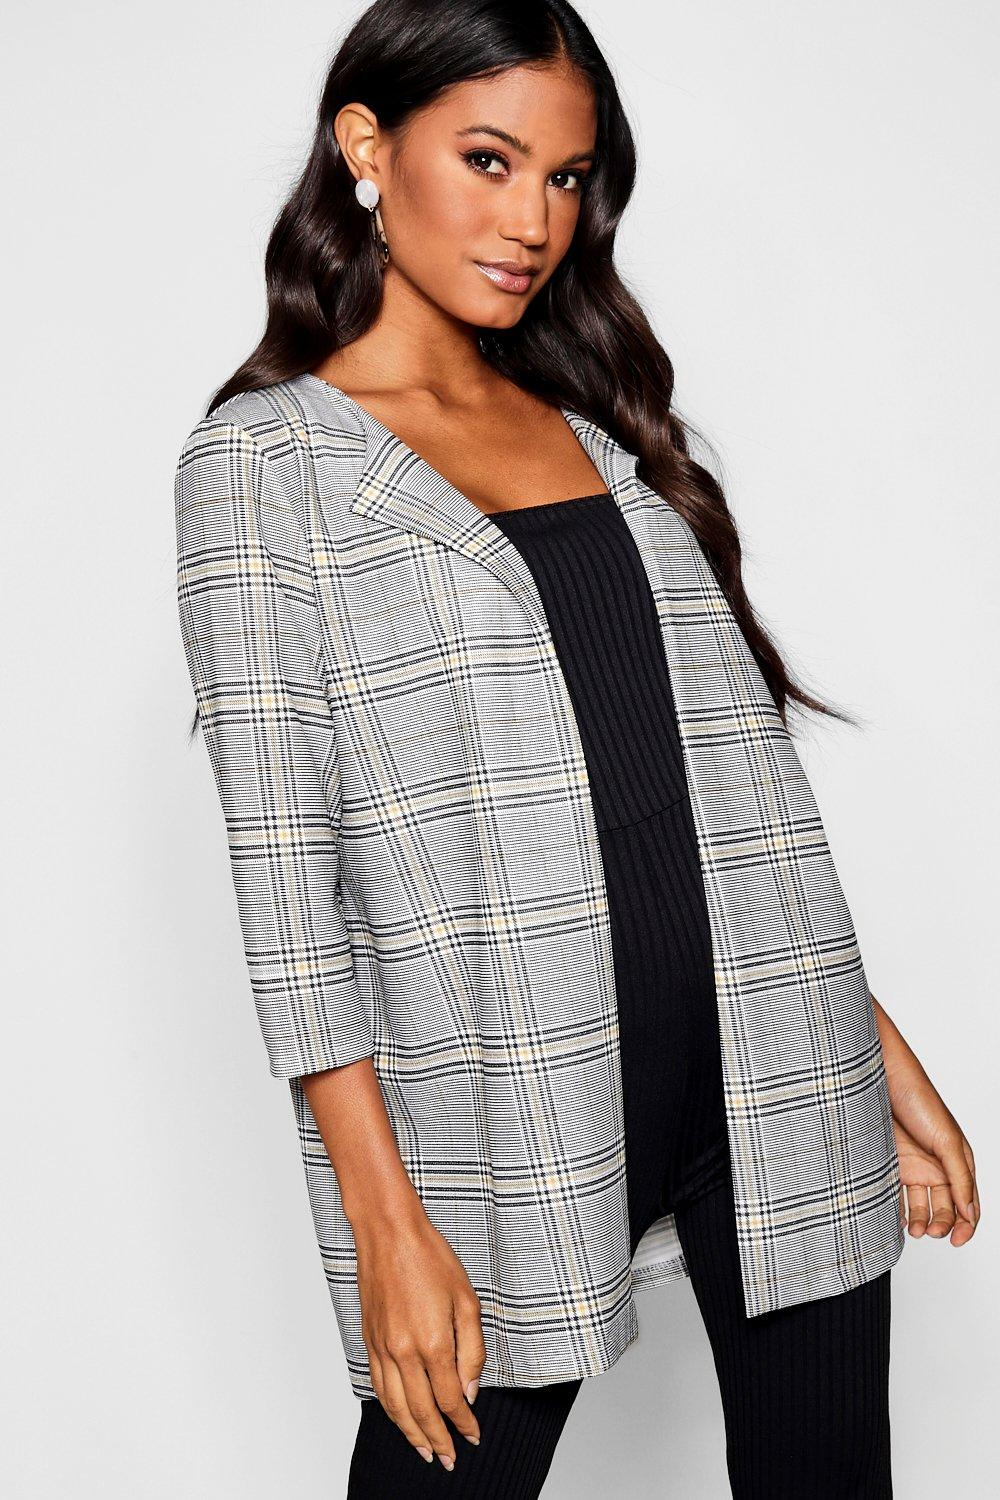 boohoo Womens Checked Edge To Edge Jacket - Grey - 8, Grey